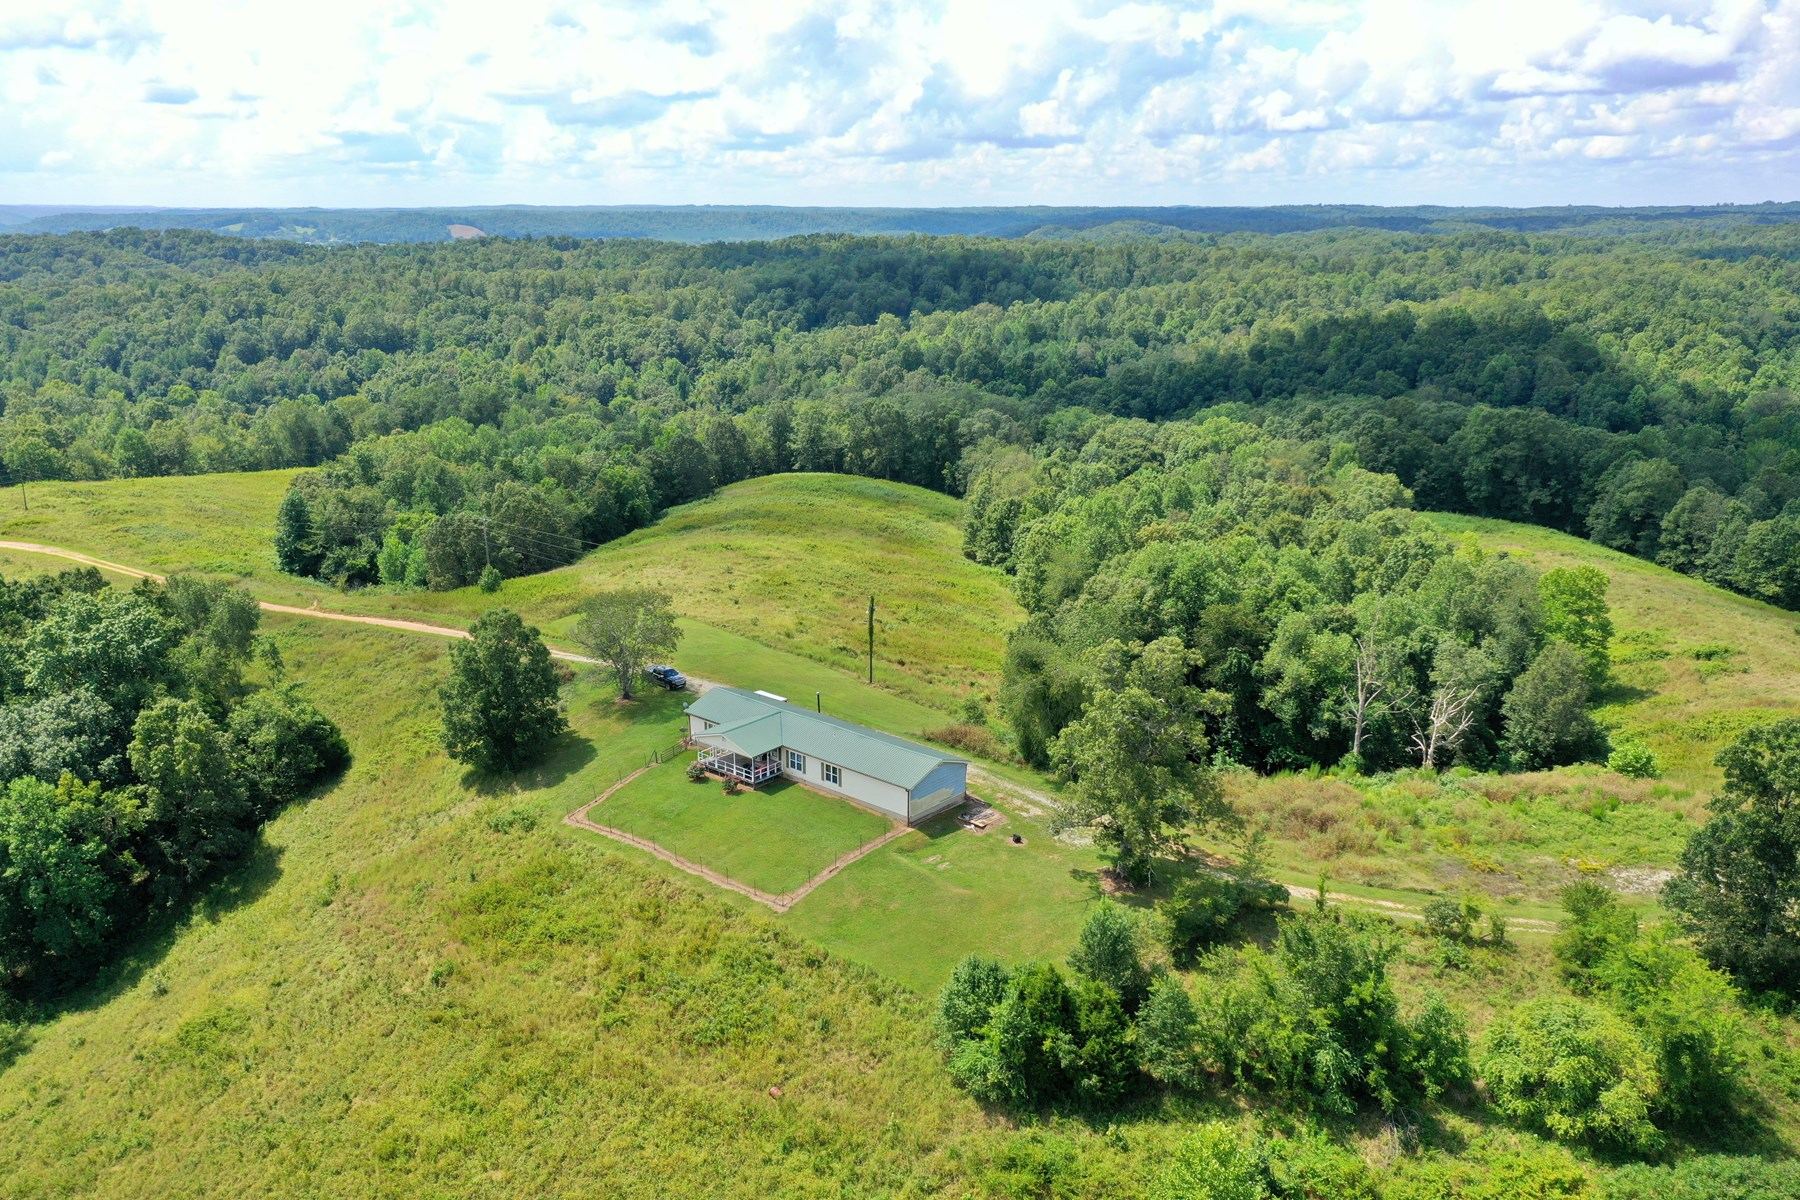 101.5 Ac with a scenic view